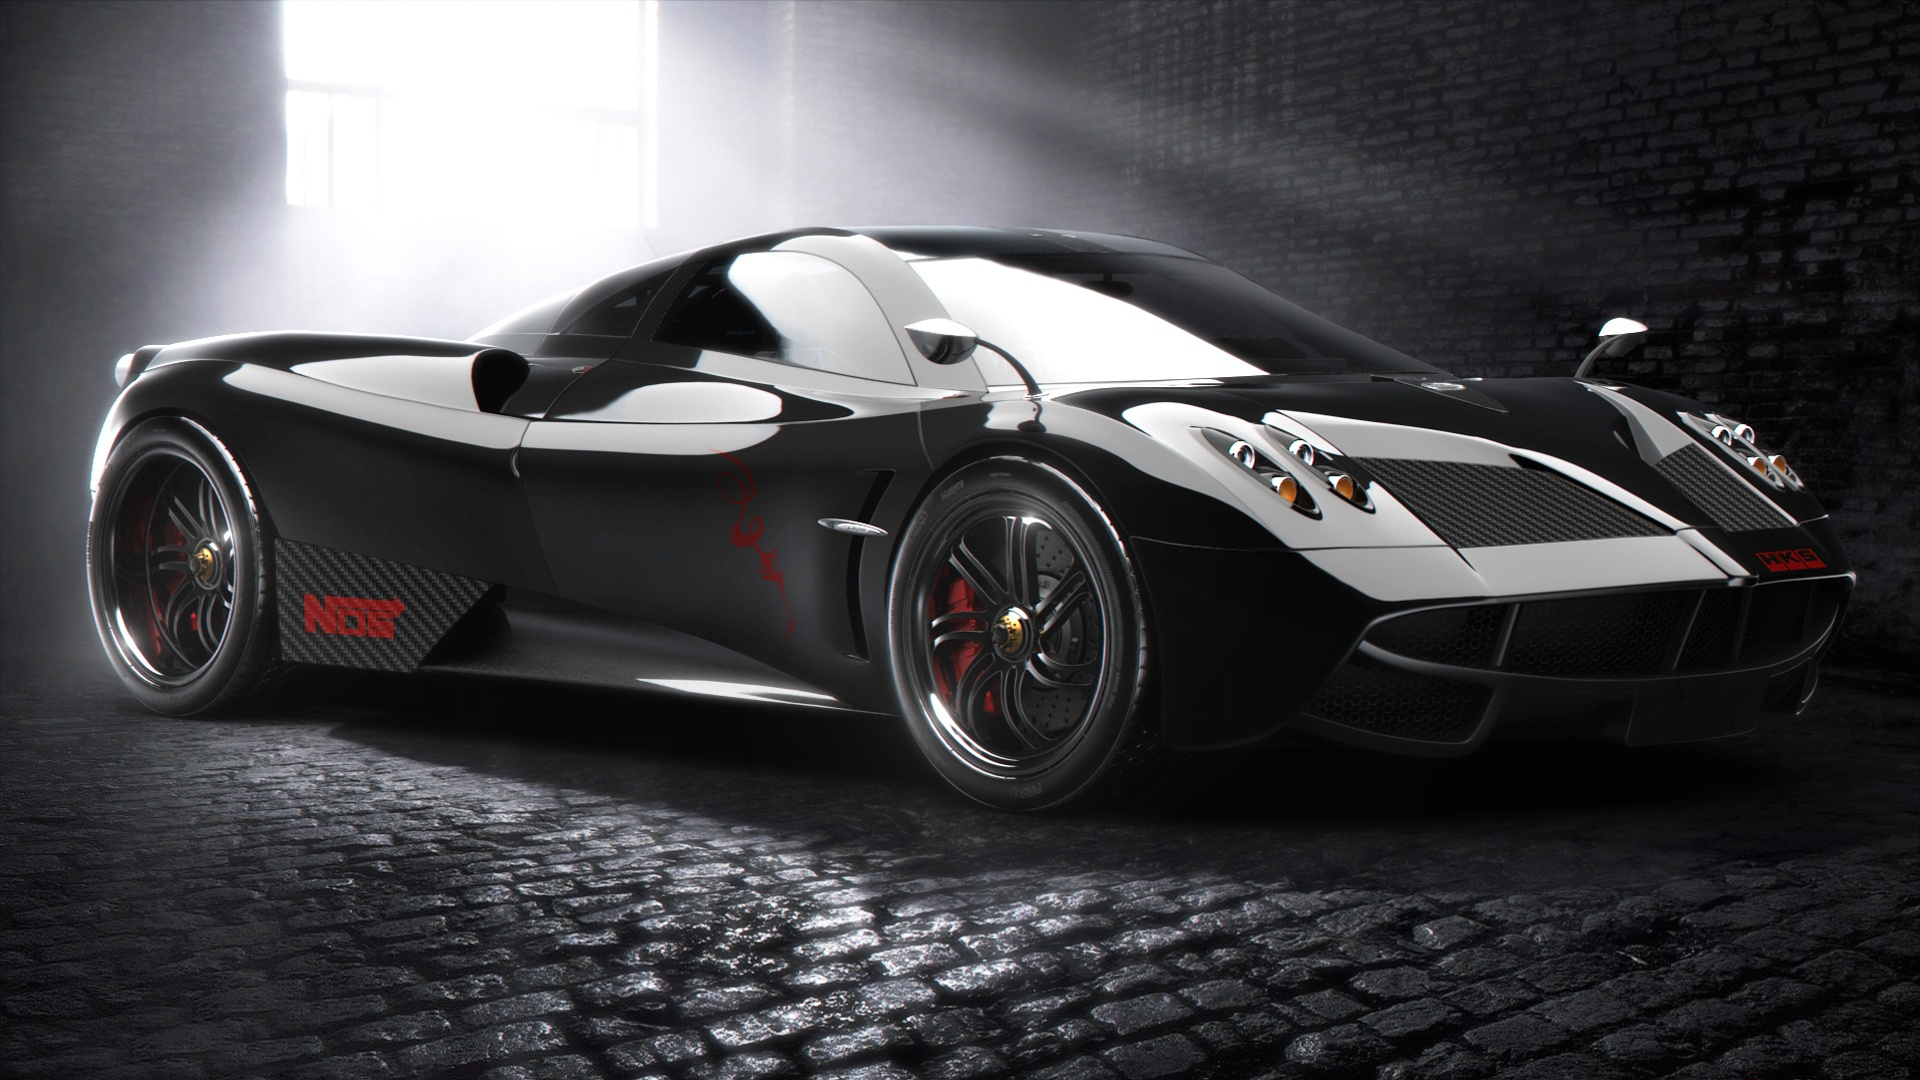 Pagani Huayra supercar black Wallpaper Widescreen Wallpapers 2014 1920x1080